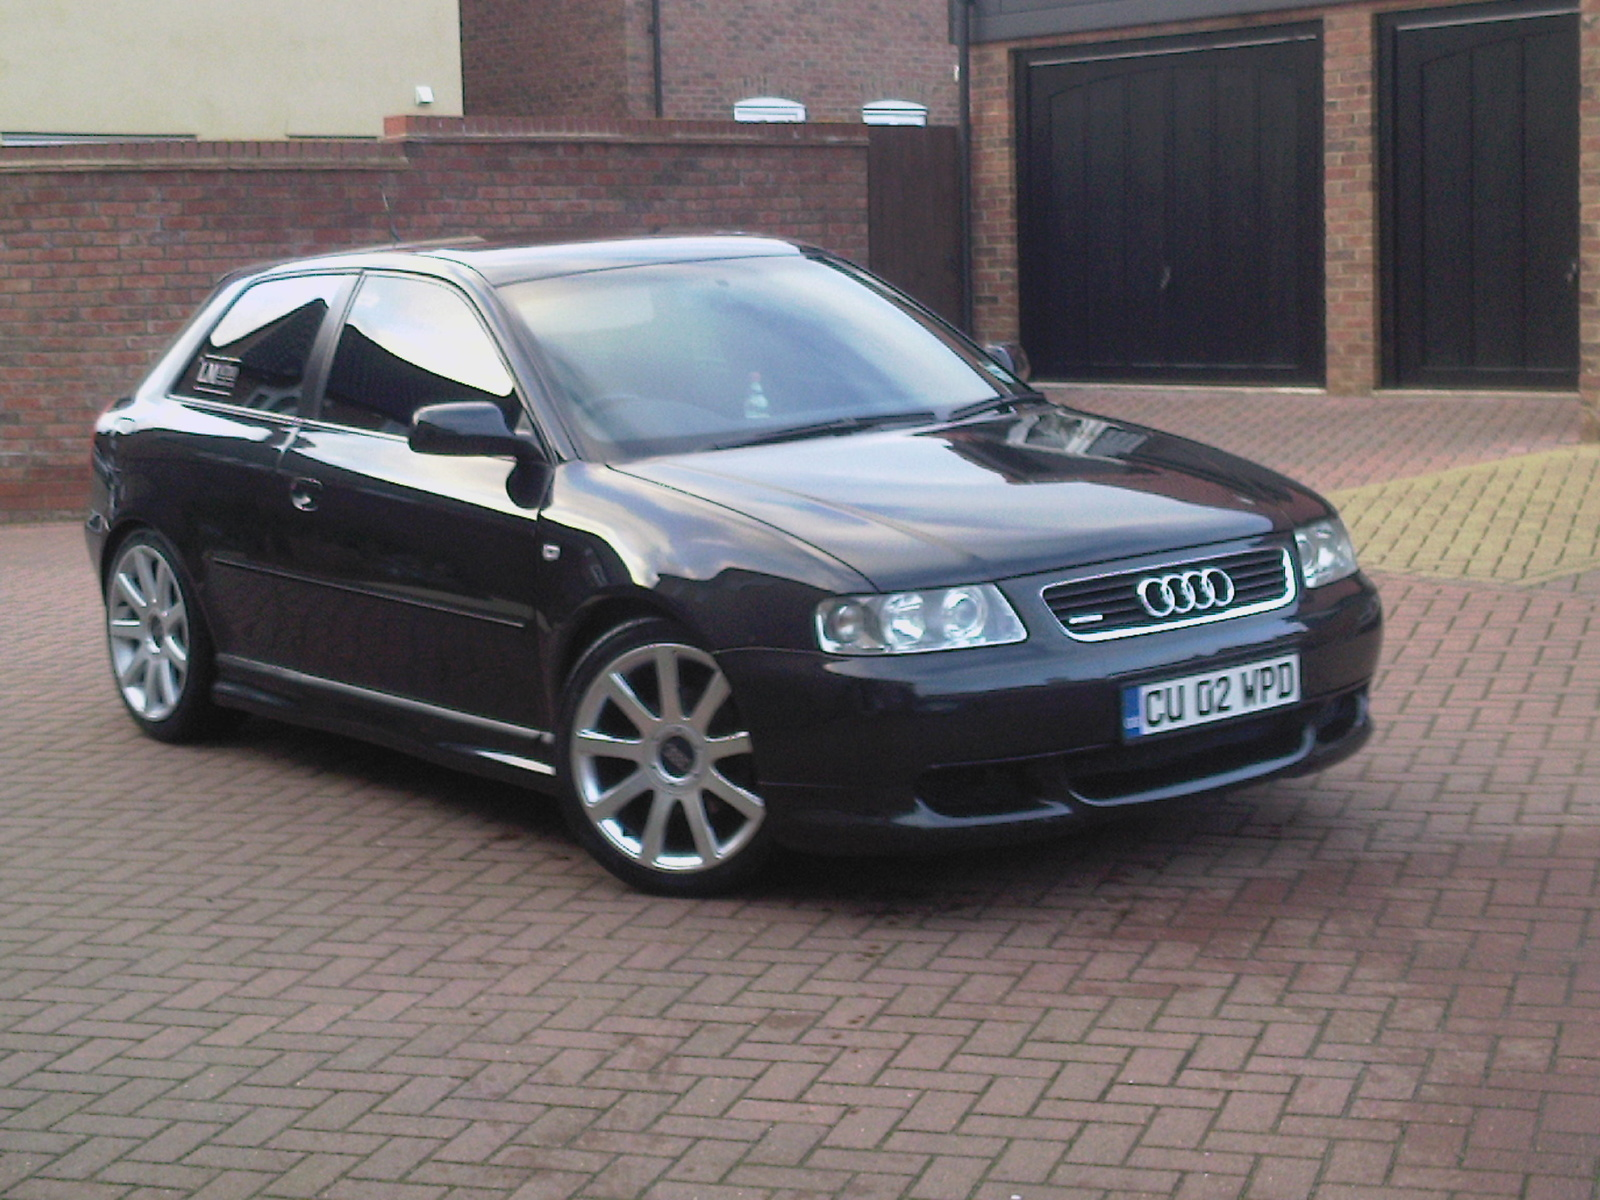 A3 1.9TDi Quattro Sport with loads of mods FOR SALE £6k ono, ask for spec